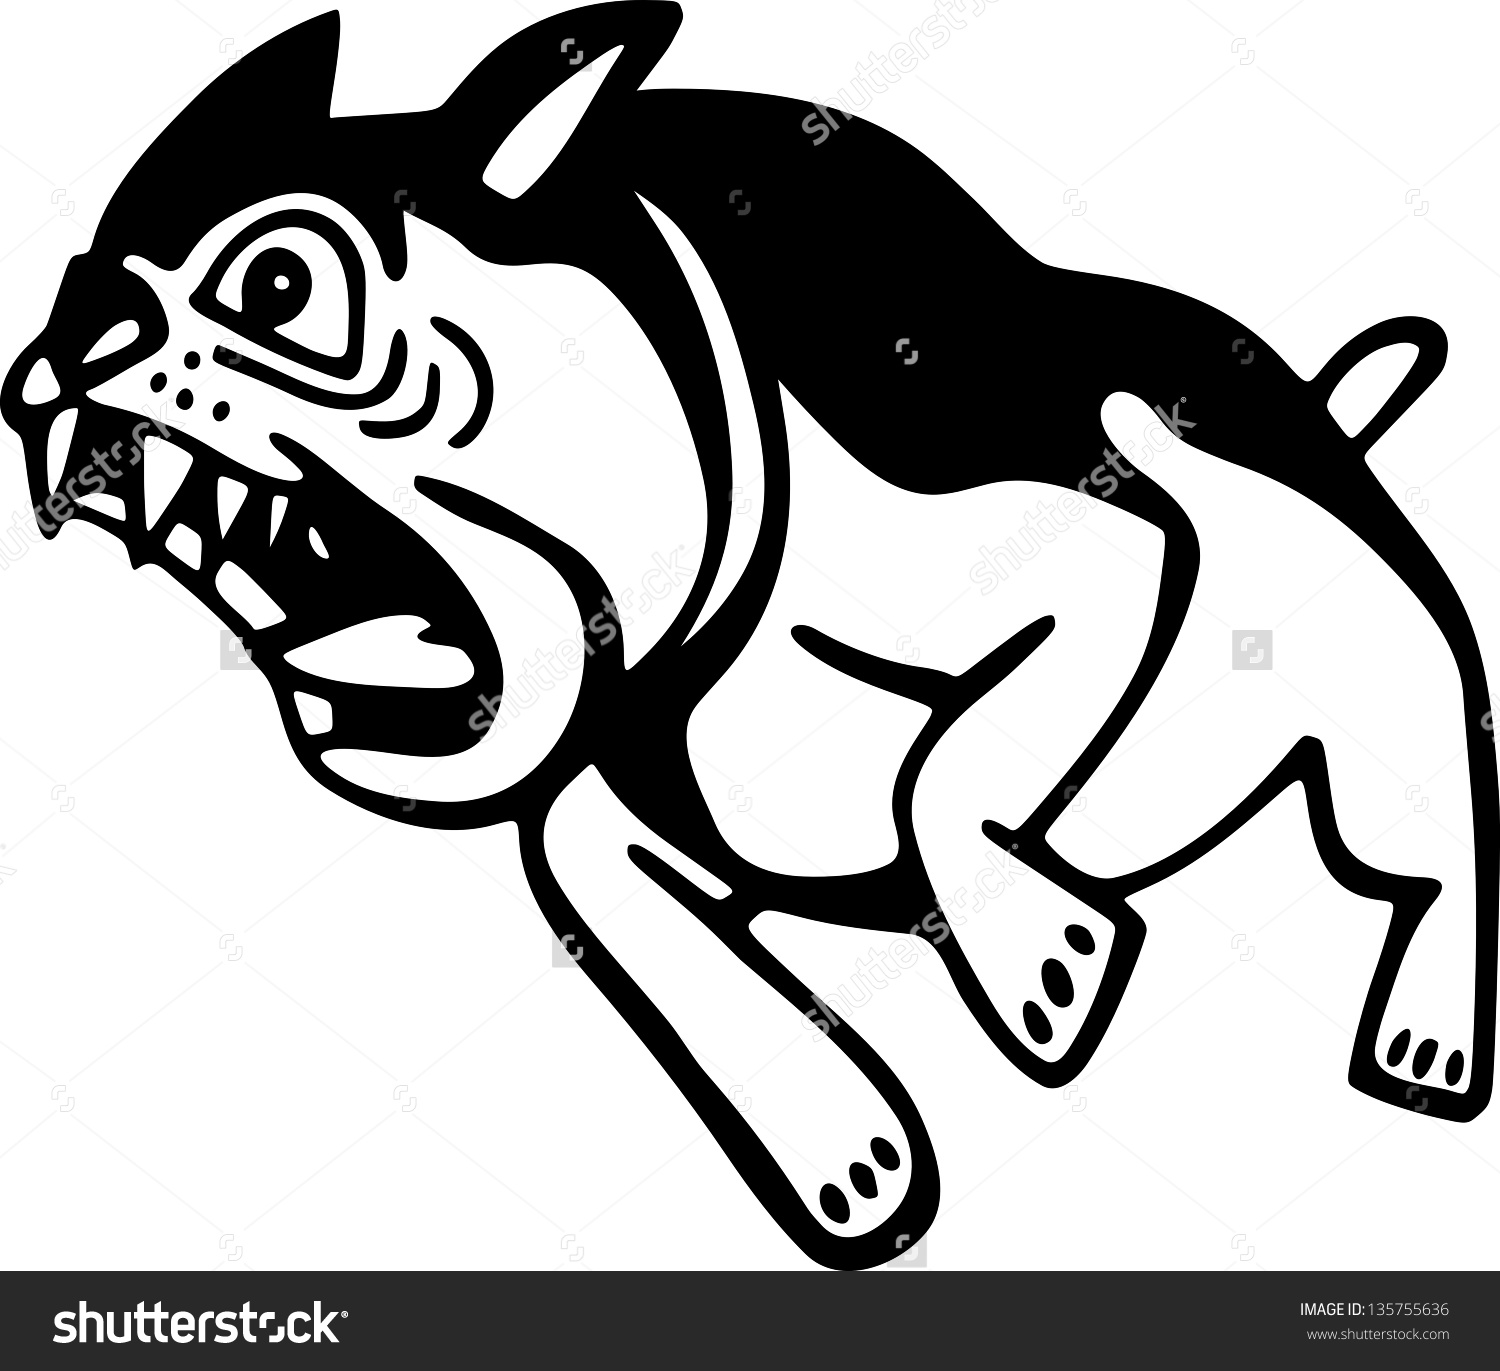 Dog Graphics Black And White | Funny Cat & Dog Pictures vector royalty free library